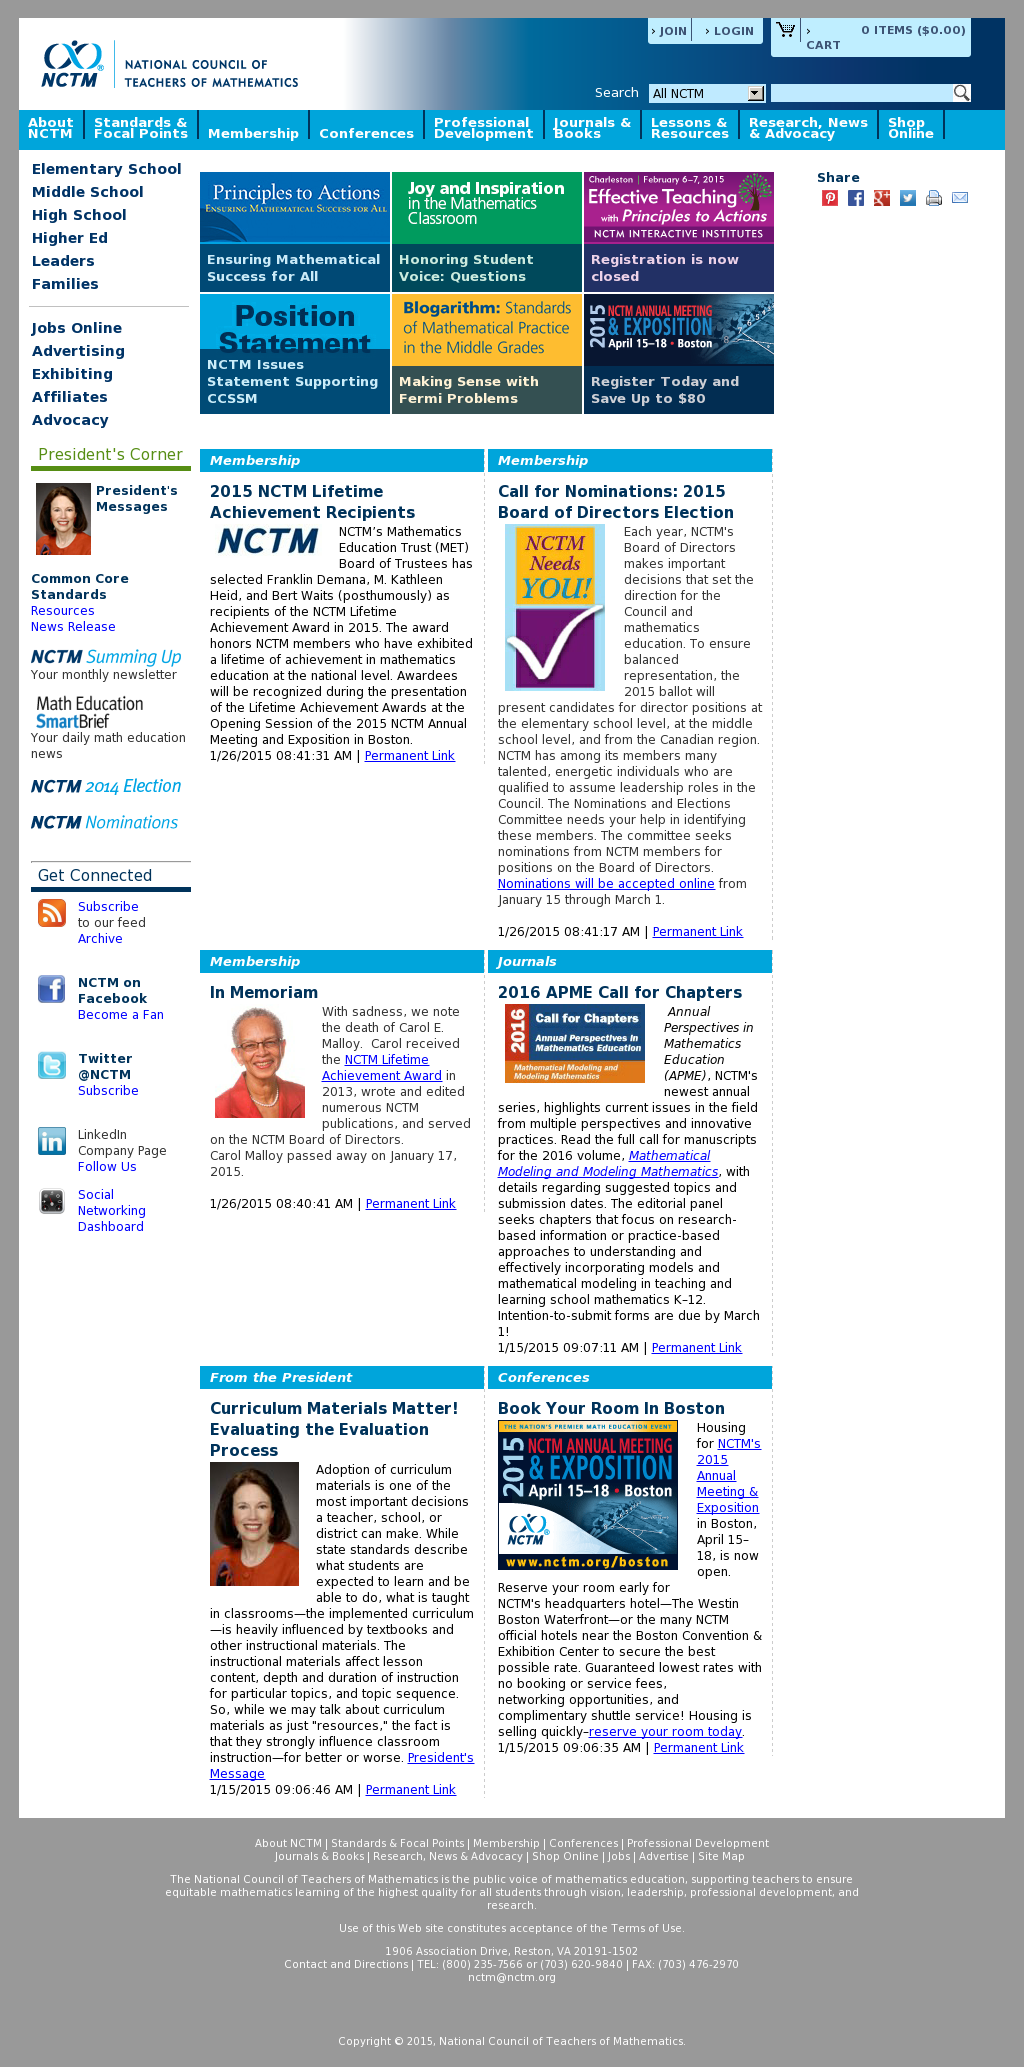 NCTM Competitors, Revenue and Employees - Owler Company Profile